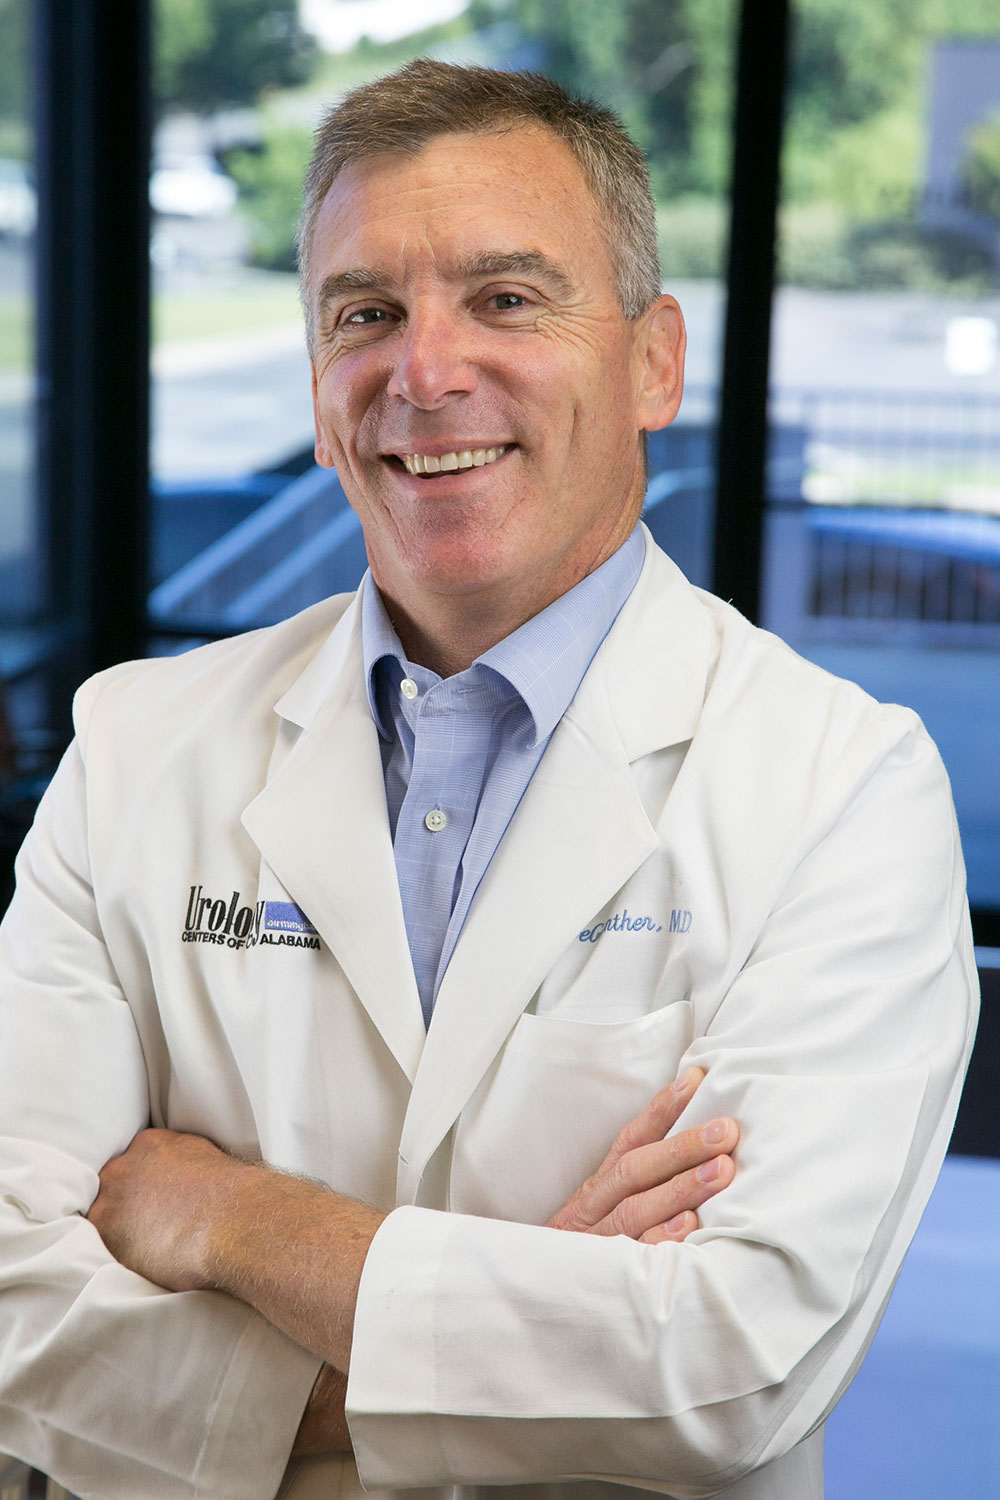 Dr. Mark Deguenther, MD